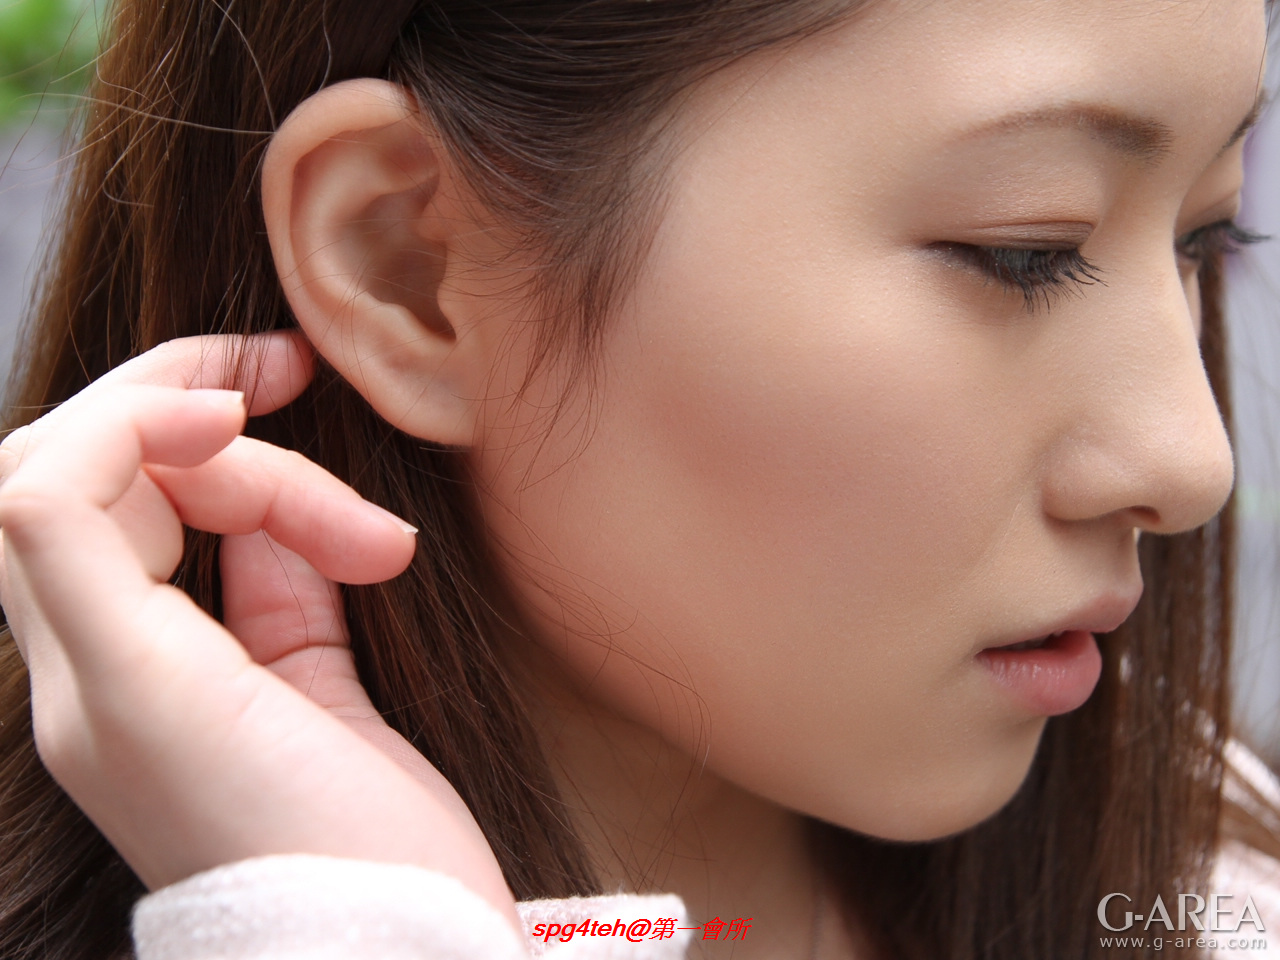 [G-Area]Special 418yua ゆあ[101P]